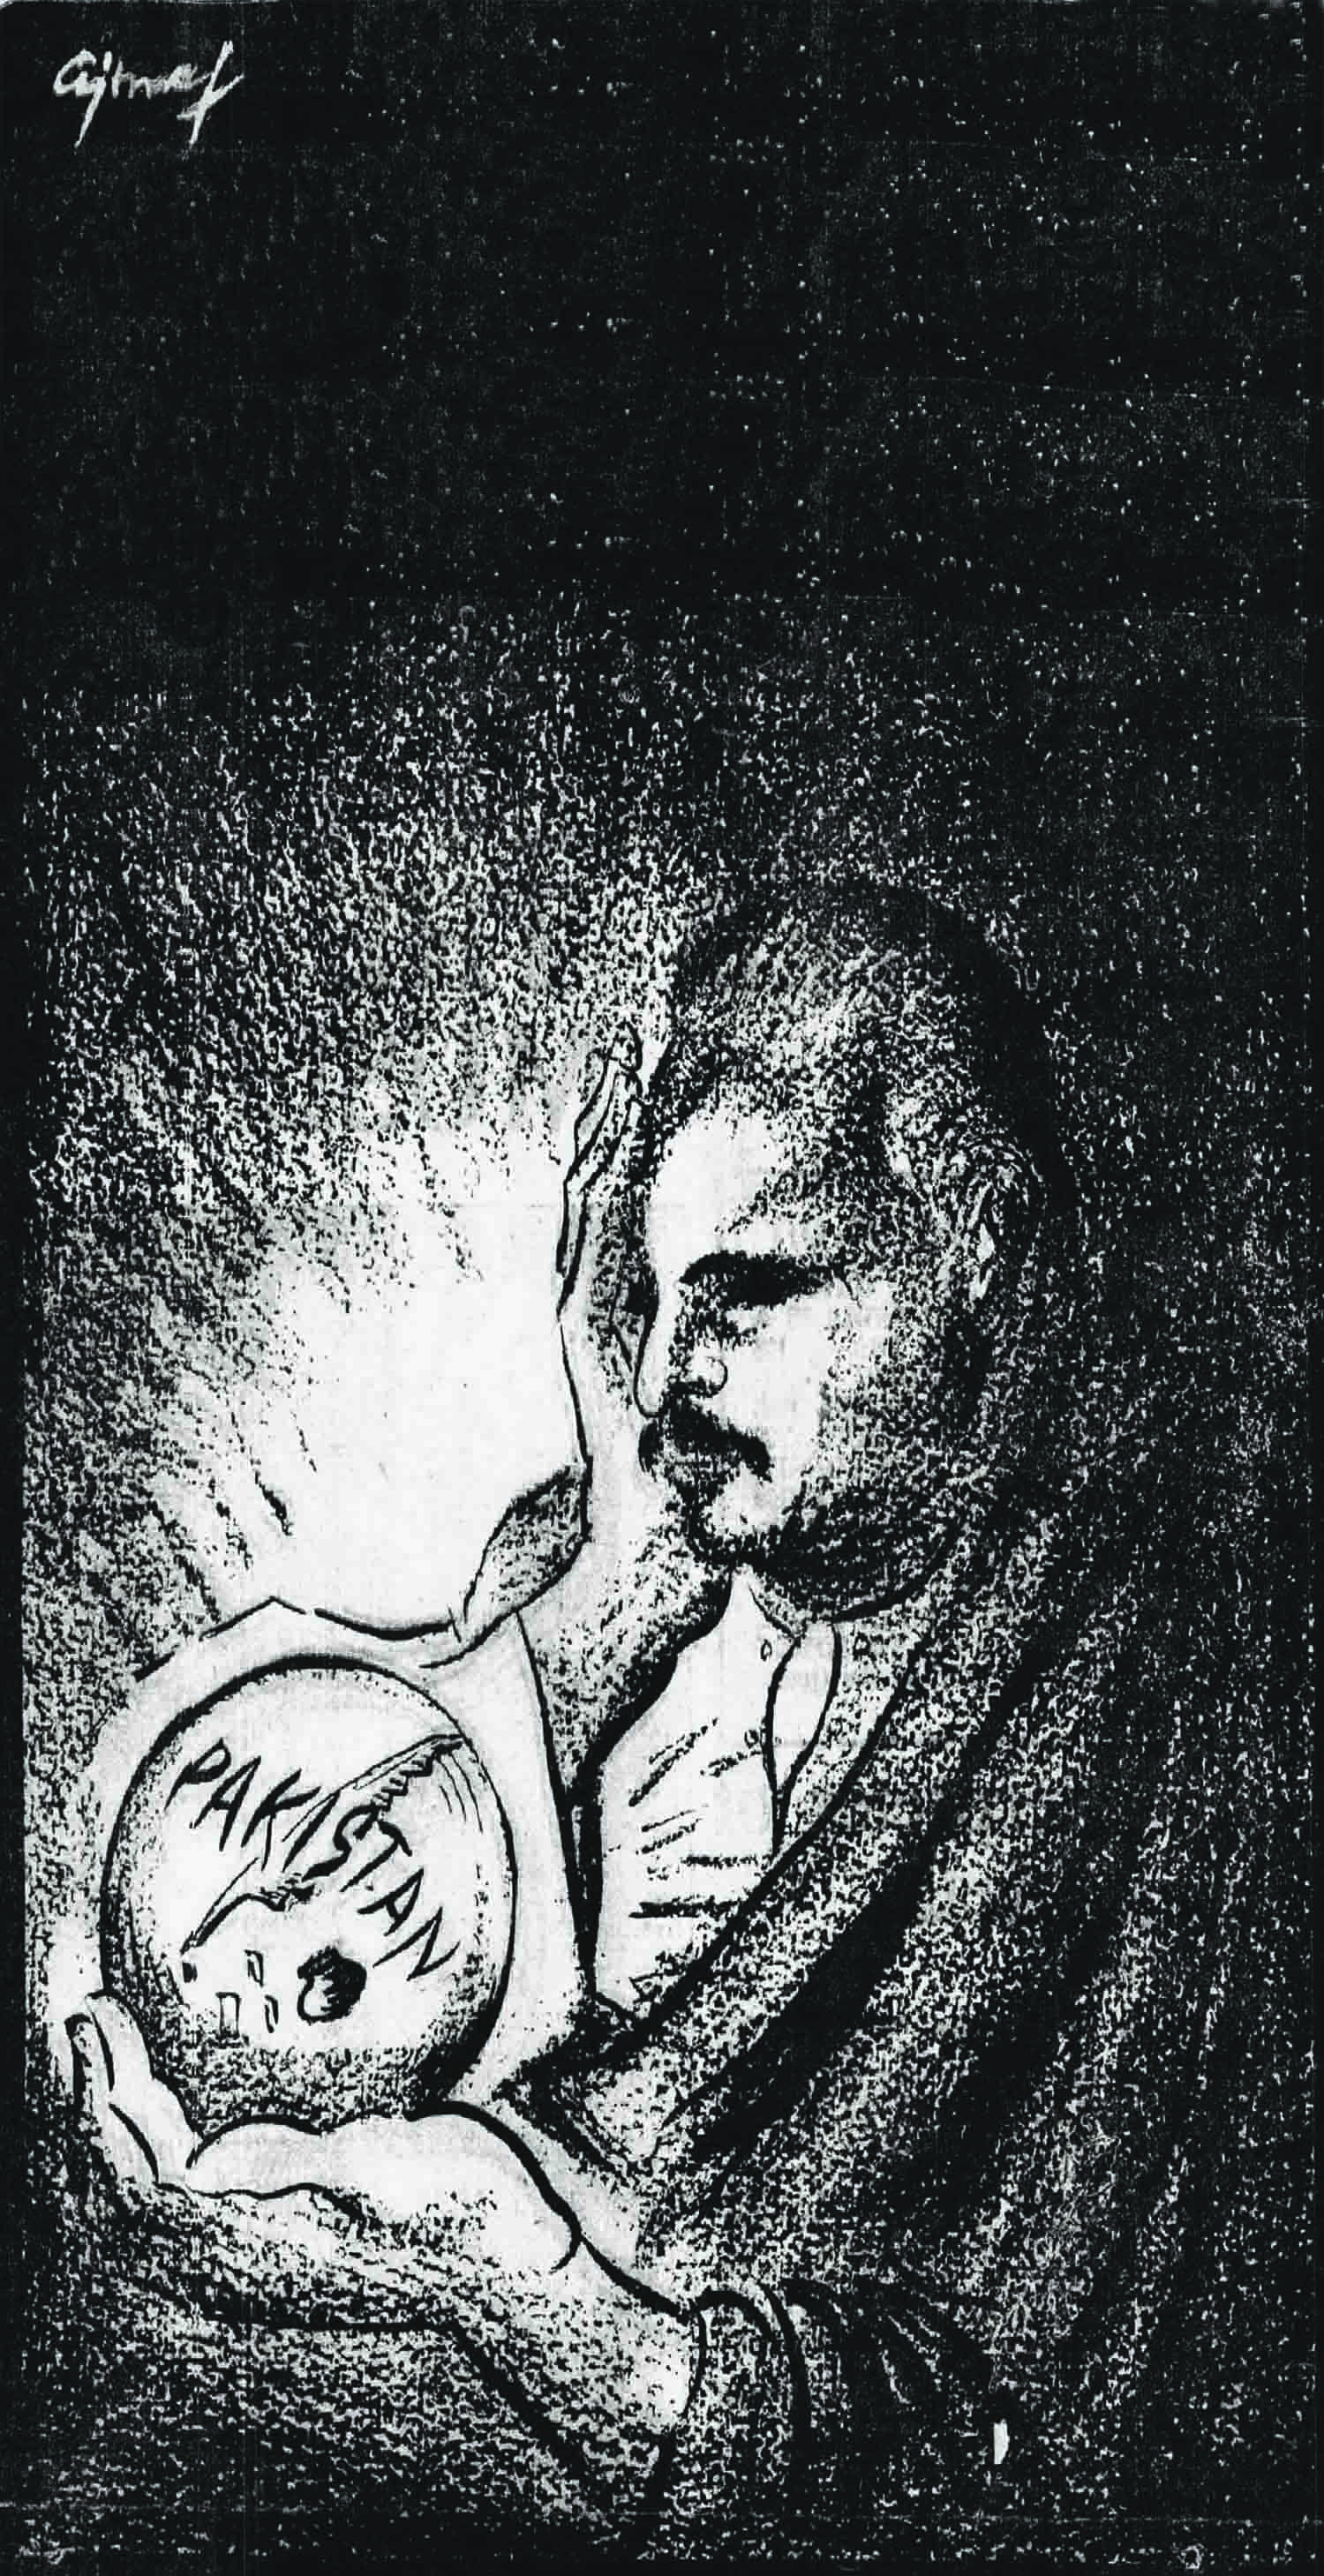 A sketch by renowned artist Ajmal Hussain depicting the man, Allama Iqbal, and his dream, Pakistan. Ajmal was the nephew of Altaf Hussain, the first editor of *Dawn* Karachi in which the illustration was published on April 21, 1948, marking the 10th anniversary of the death of Allama Iqbal.